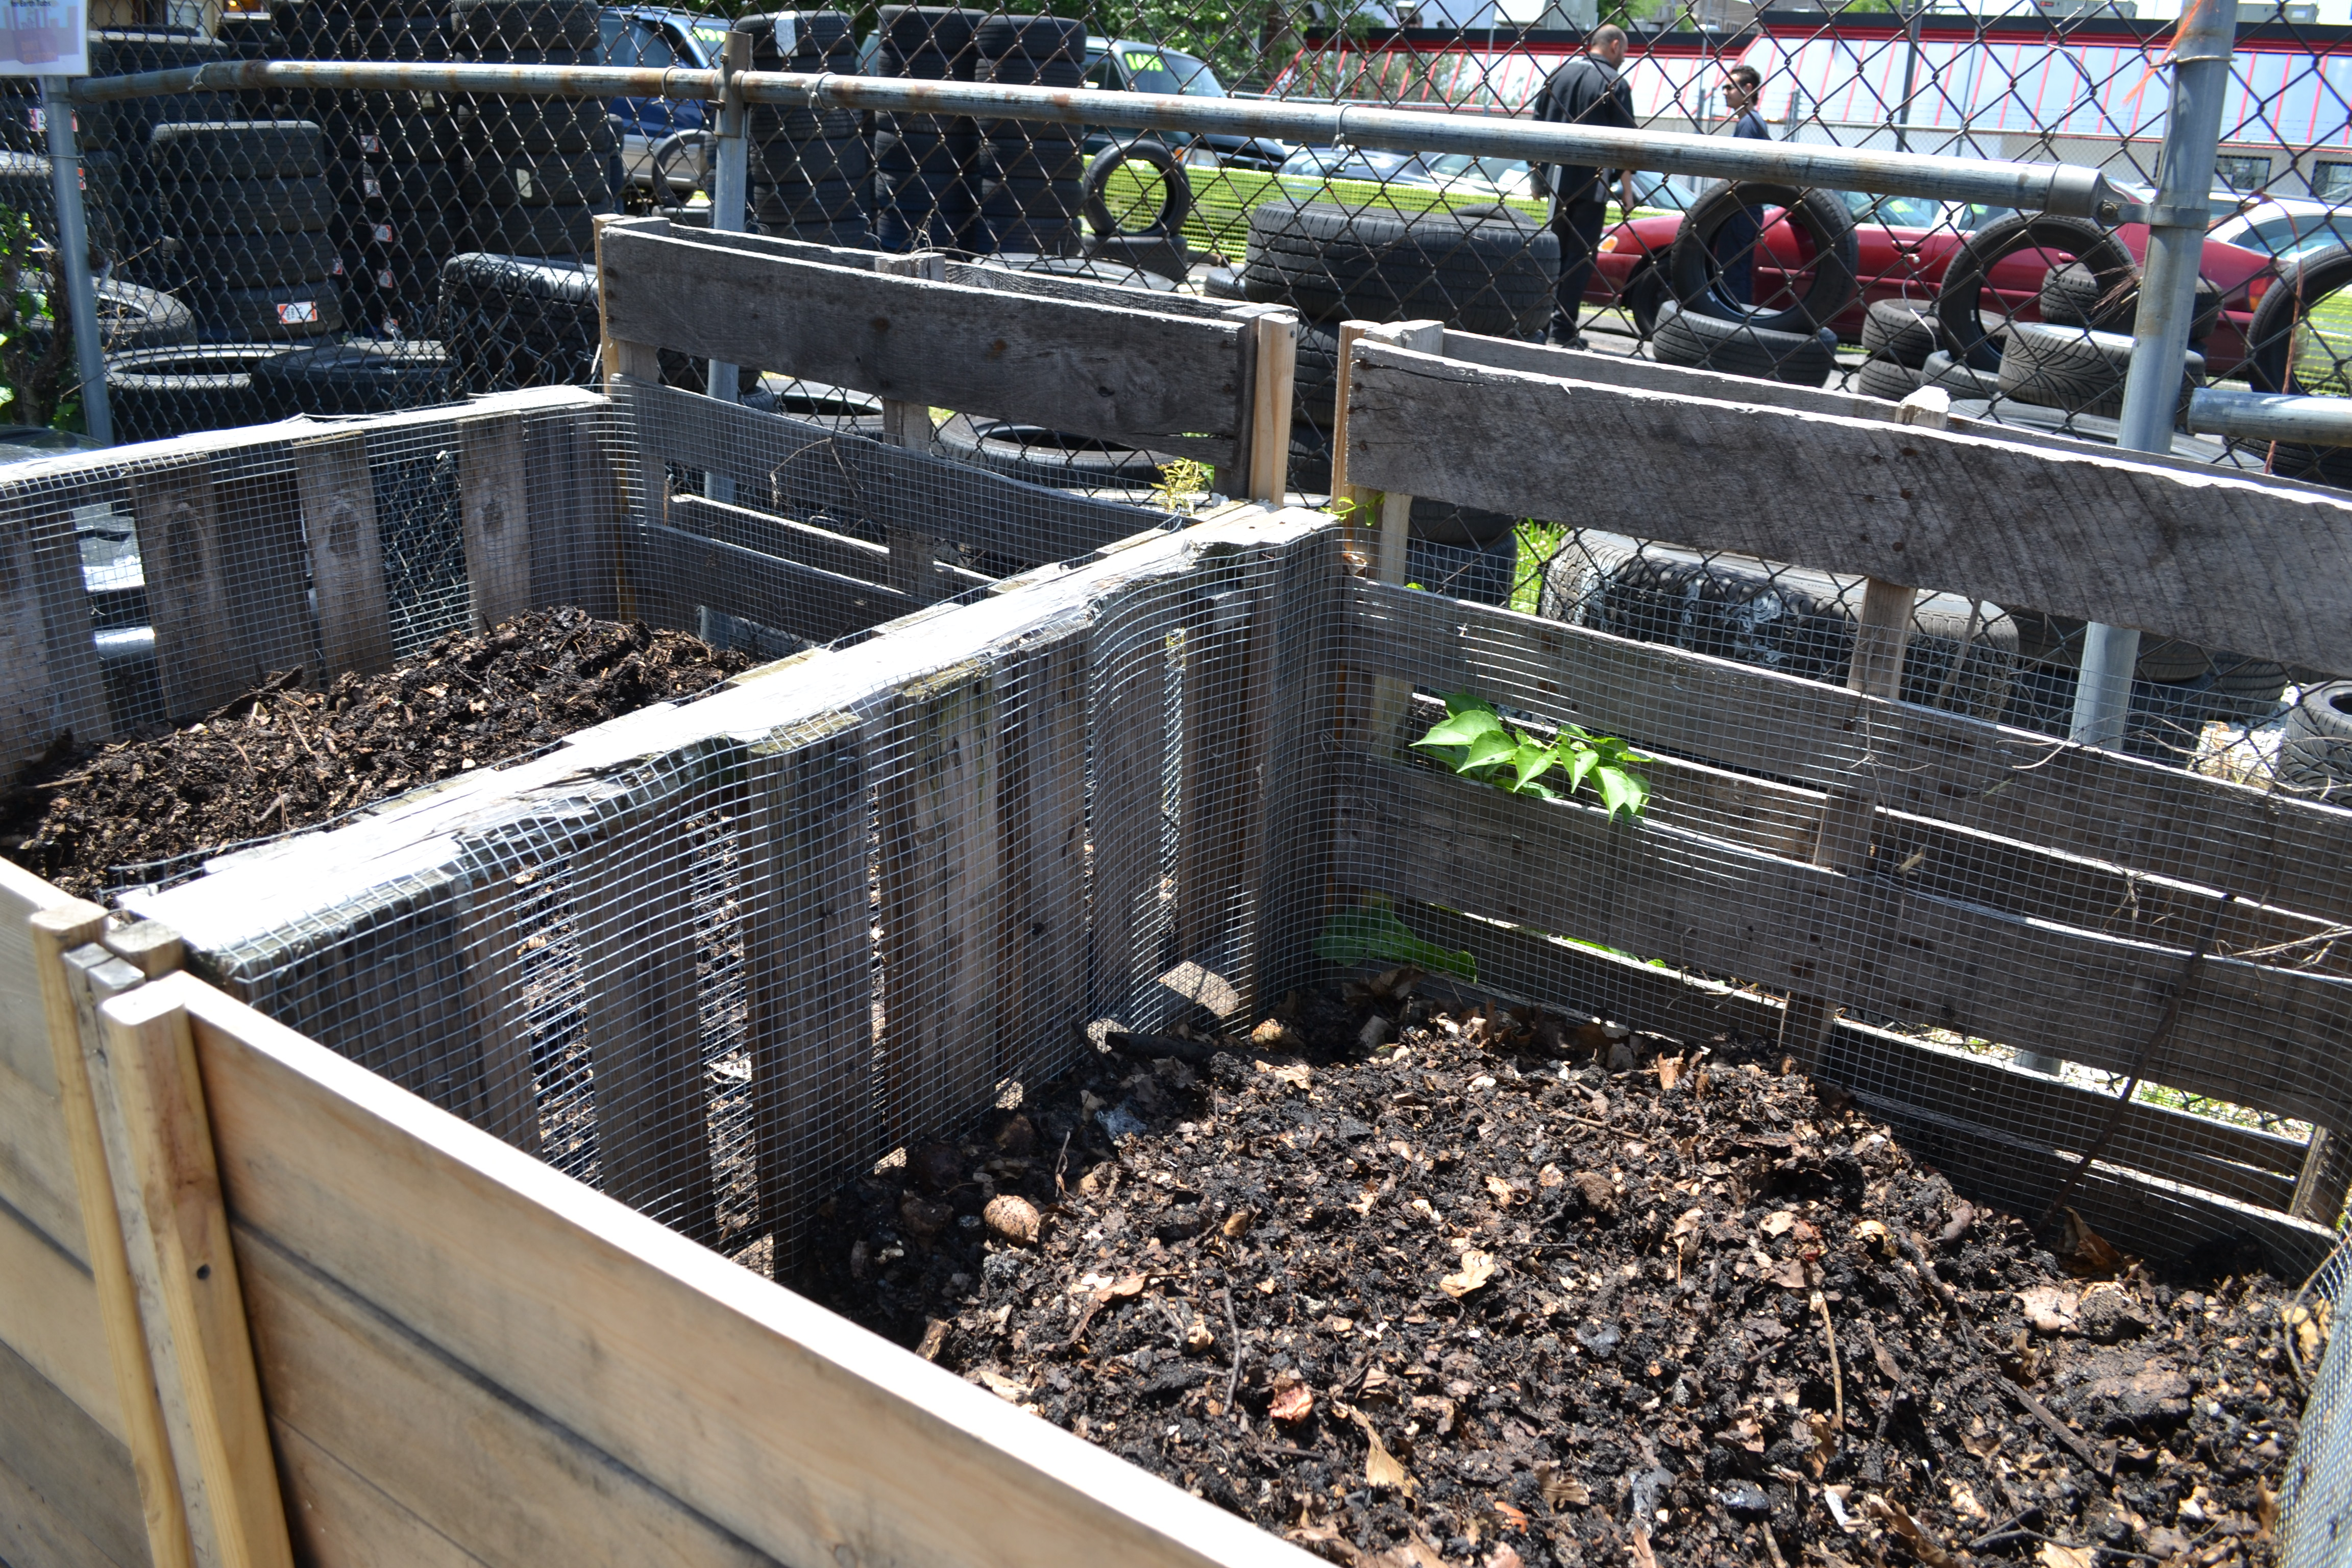 The Dirt Factory turns food scraps, leaves and other organic material into nutrient-rich compost for neighborhood gardens